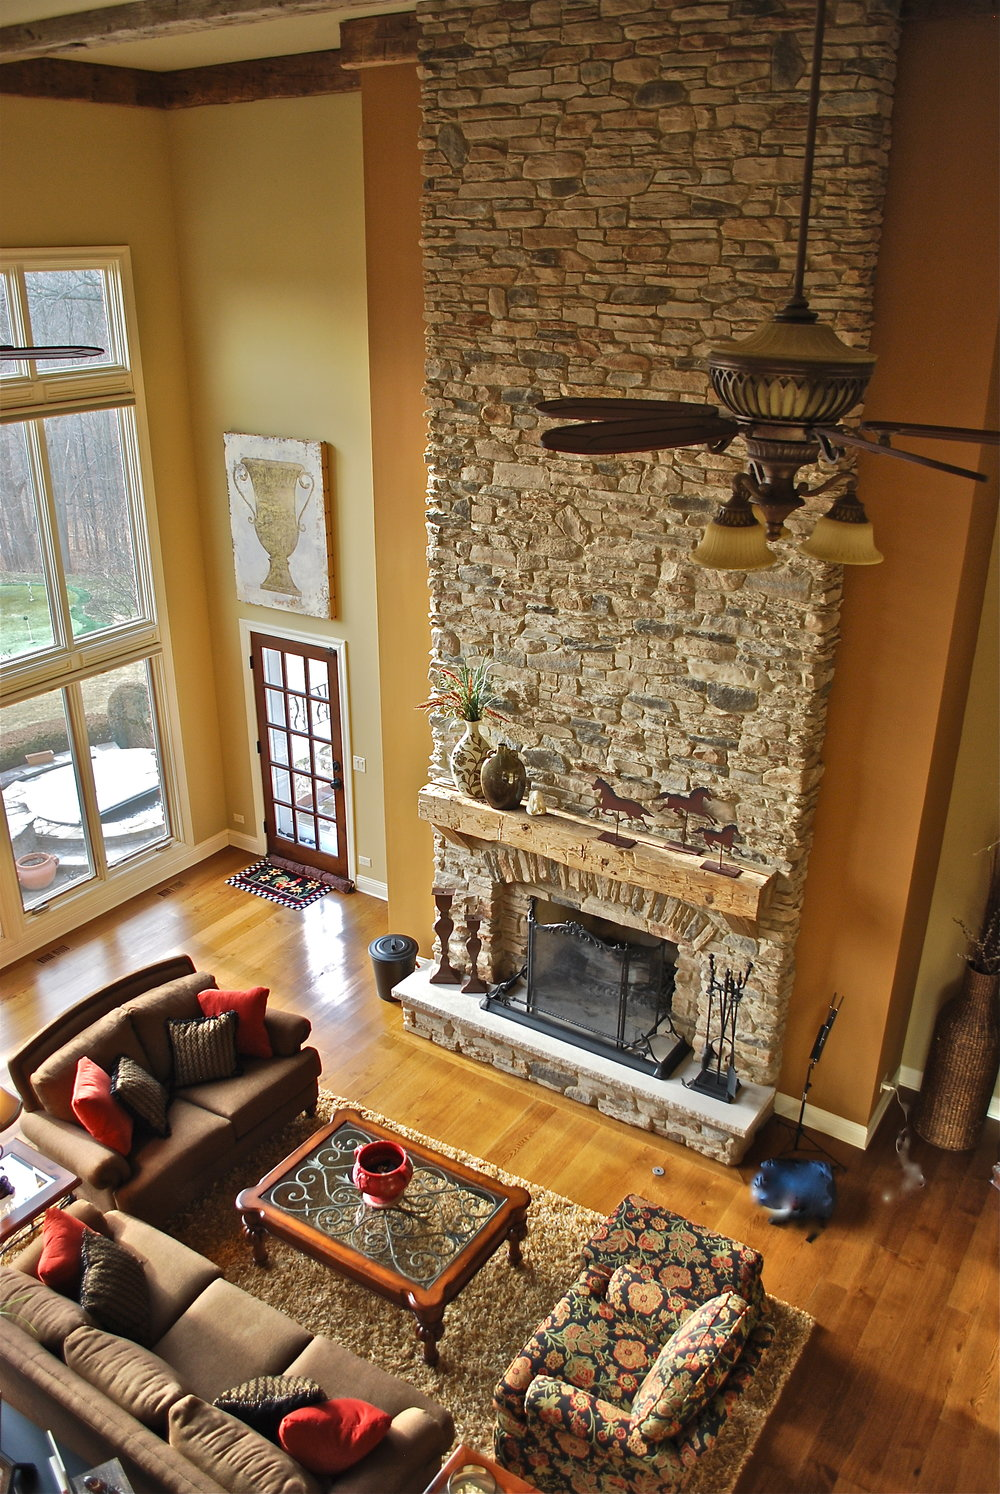 Luxury Fireplace Updating, Renovations & Updating in Naperville IL. Remove & Replace Your Existing Fireplace and Change to Stone or Stacked Stone. Located in Naperville IL. Southampton Builders is Located in Geneva IL.